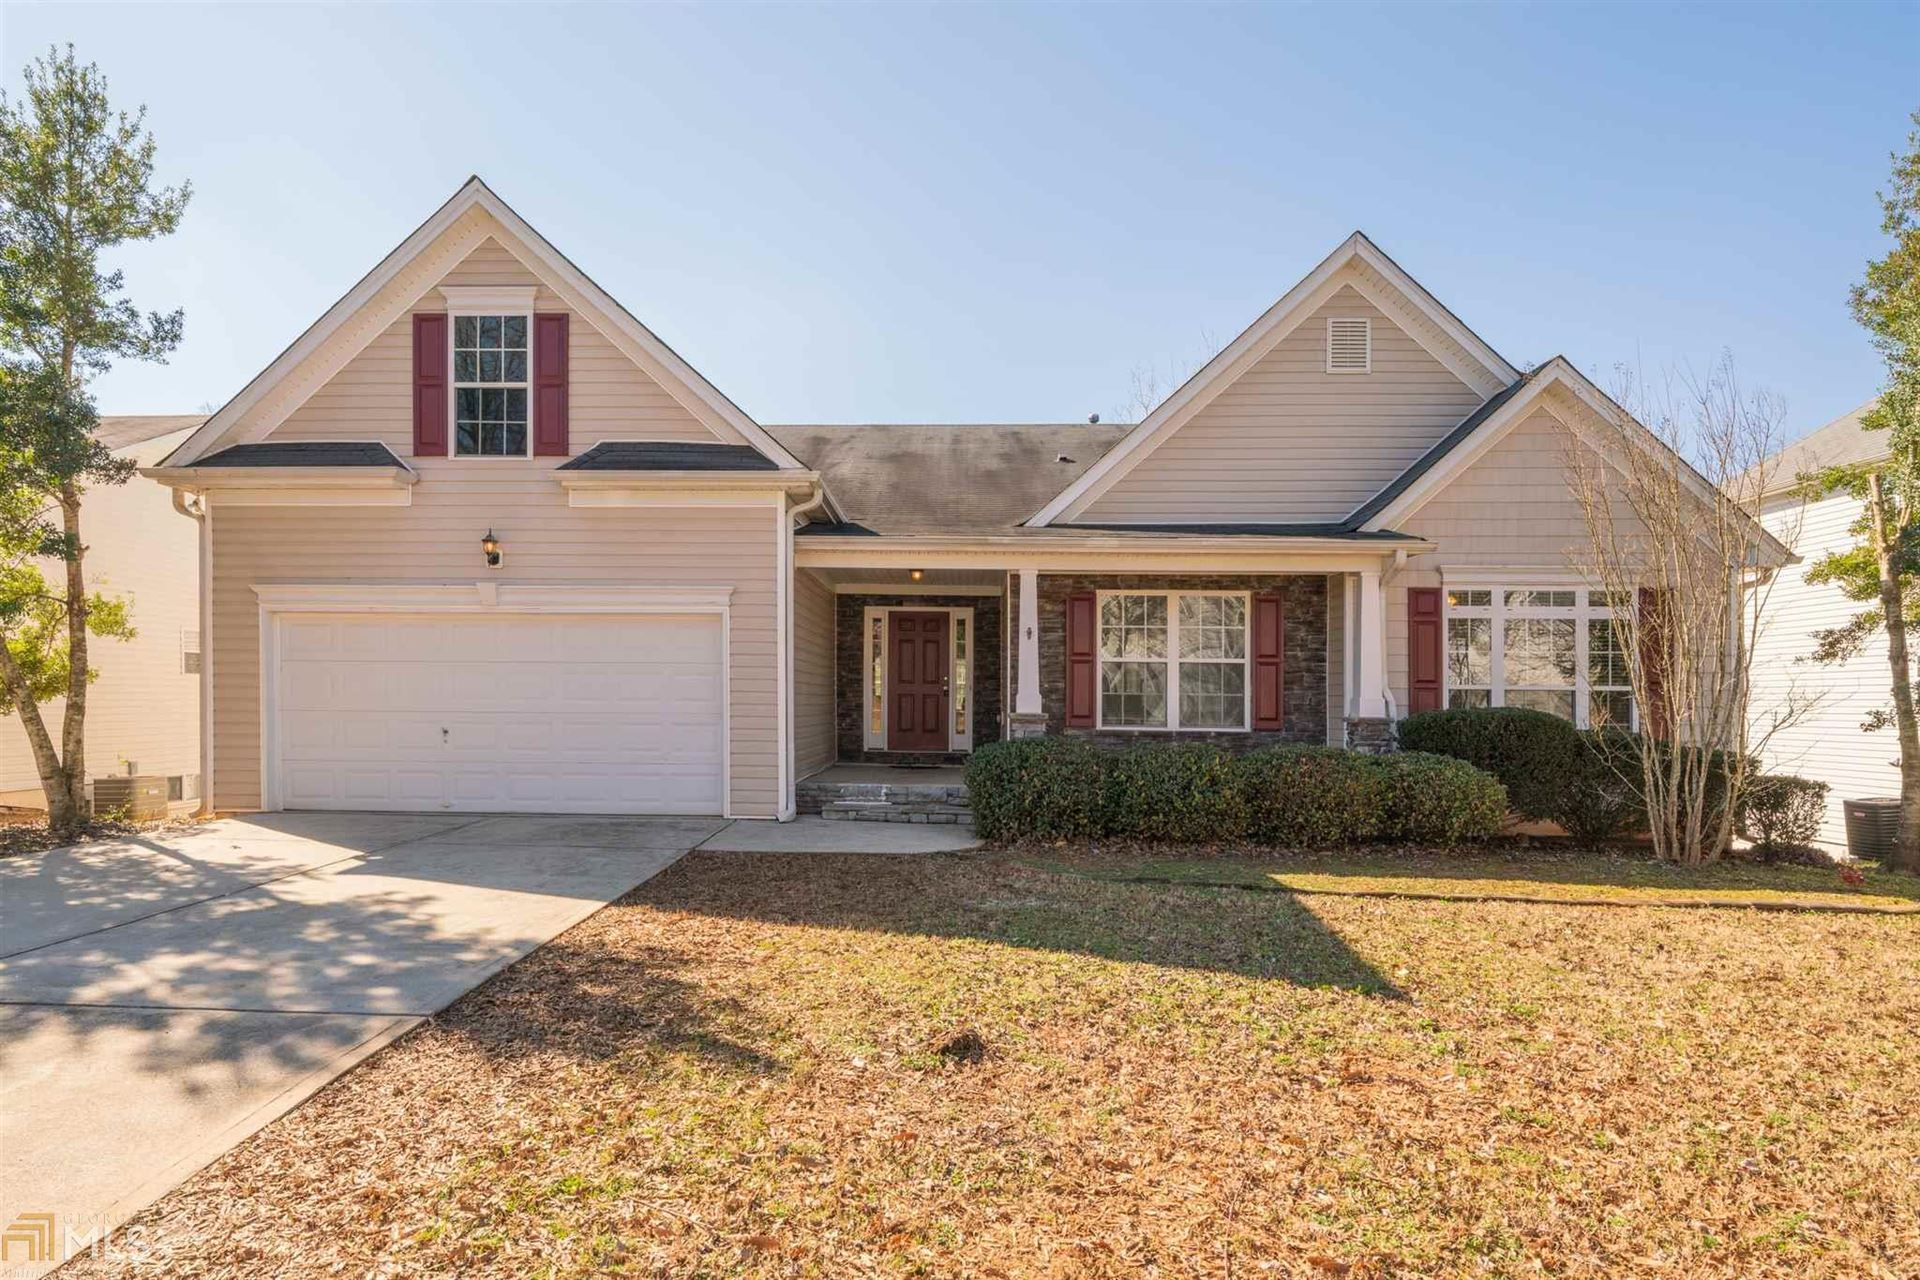 Photo of 105 Valley Brook Dr, Covington, GA 30016 (MLS # 8920974)